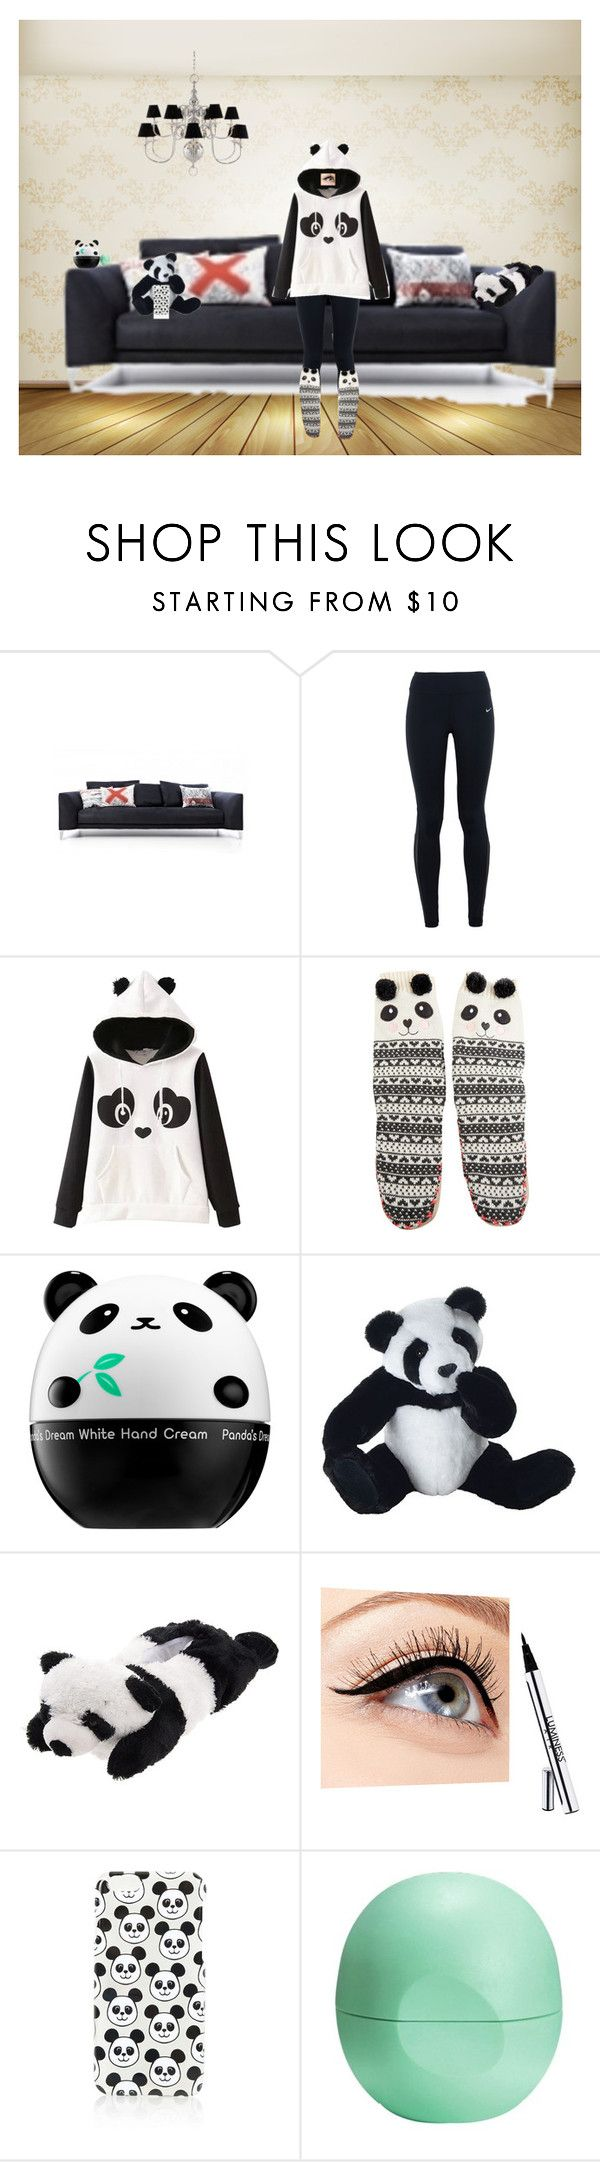 """""""chillen at home:panda"""" by michellemaria08 on Polyvore featuring Mode, Cappellini, NIKE, Accessorize, Tony Moly, Panda, Luminess Air, Topshop, Eos und Eichholtz"""